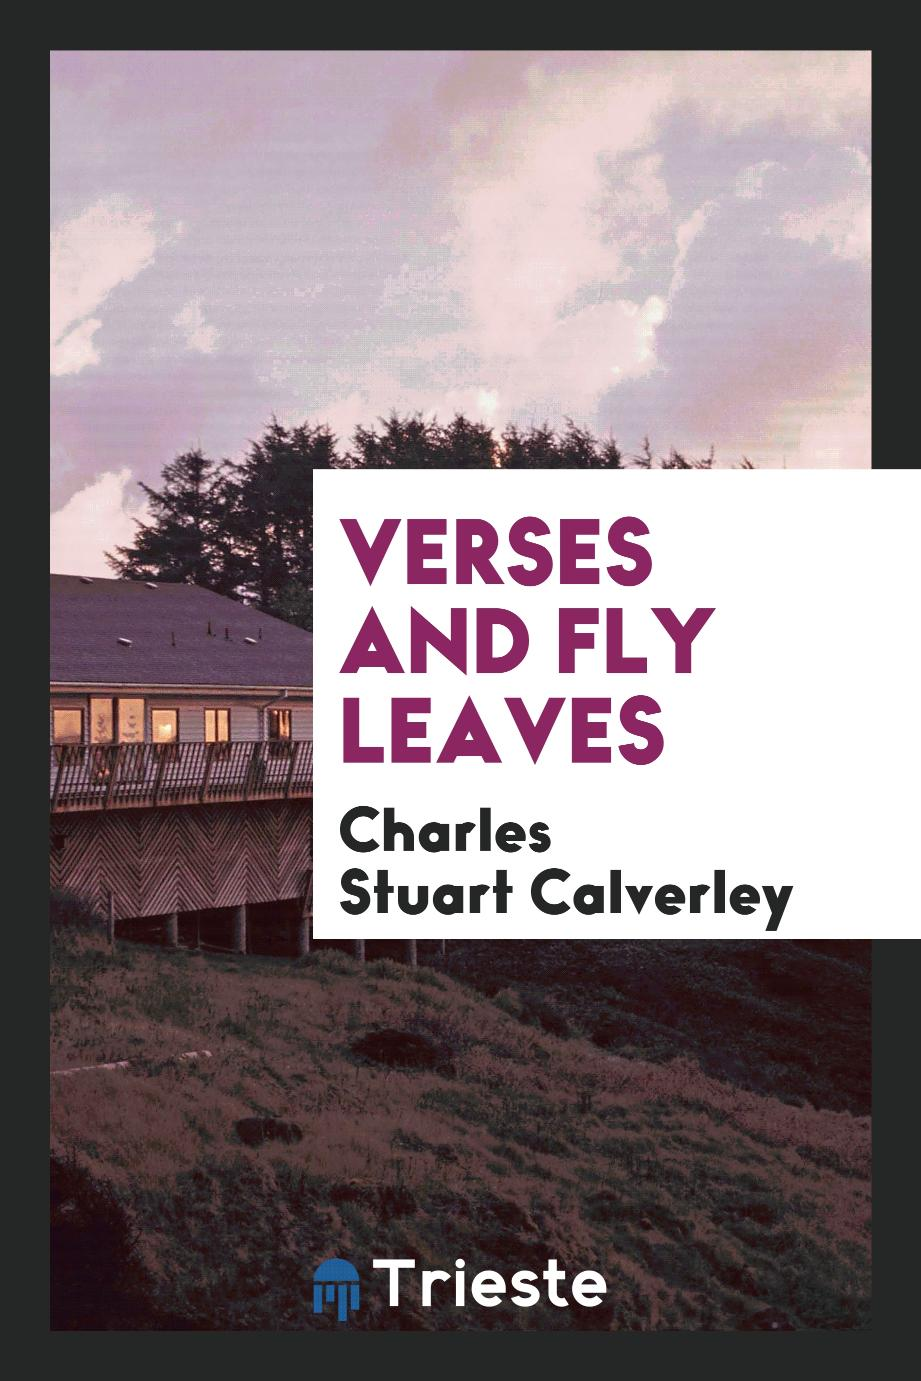 Verses and Fly leaves